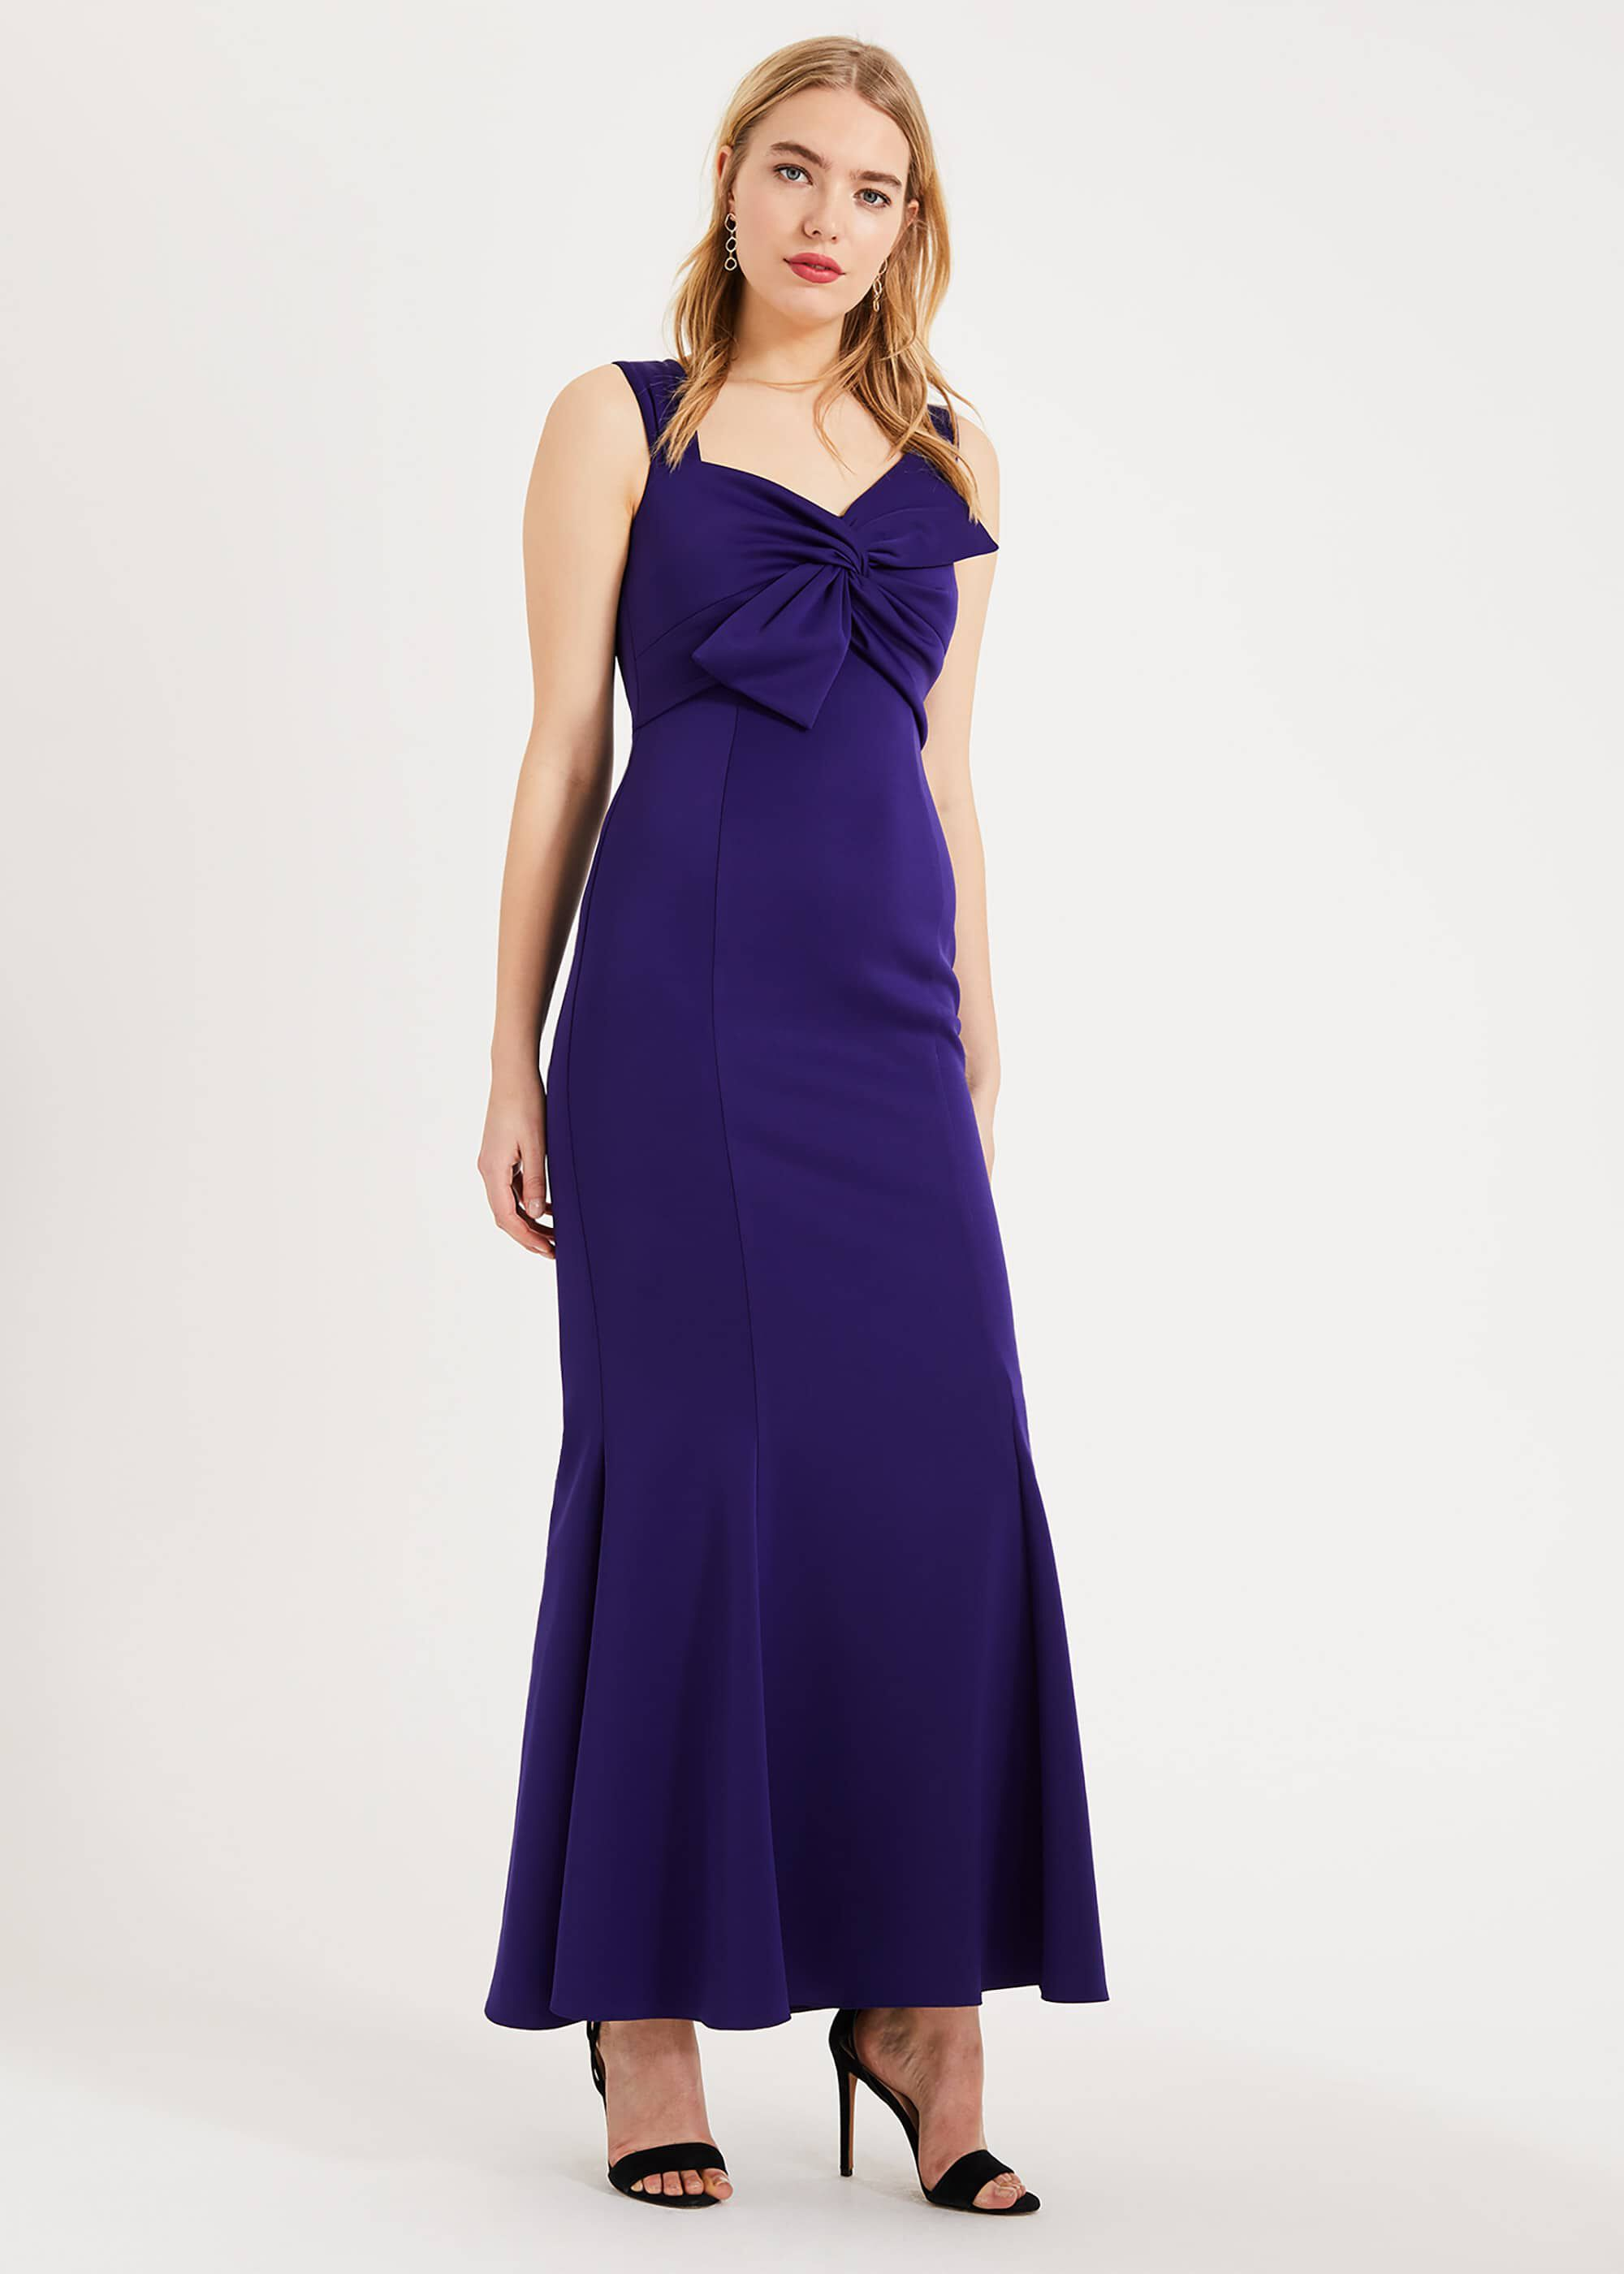 Phase Eight Gillian Bow Maxi Dress, Purple, Maxi, Occasion Dress